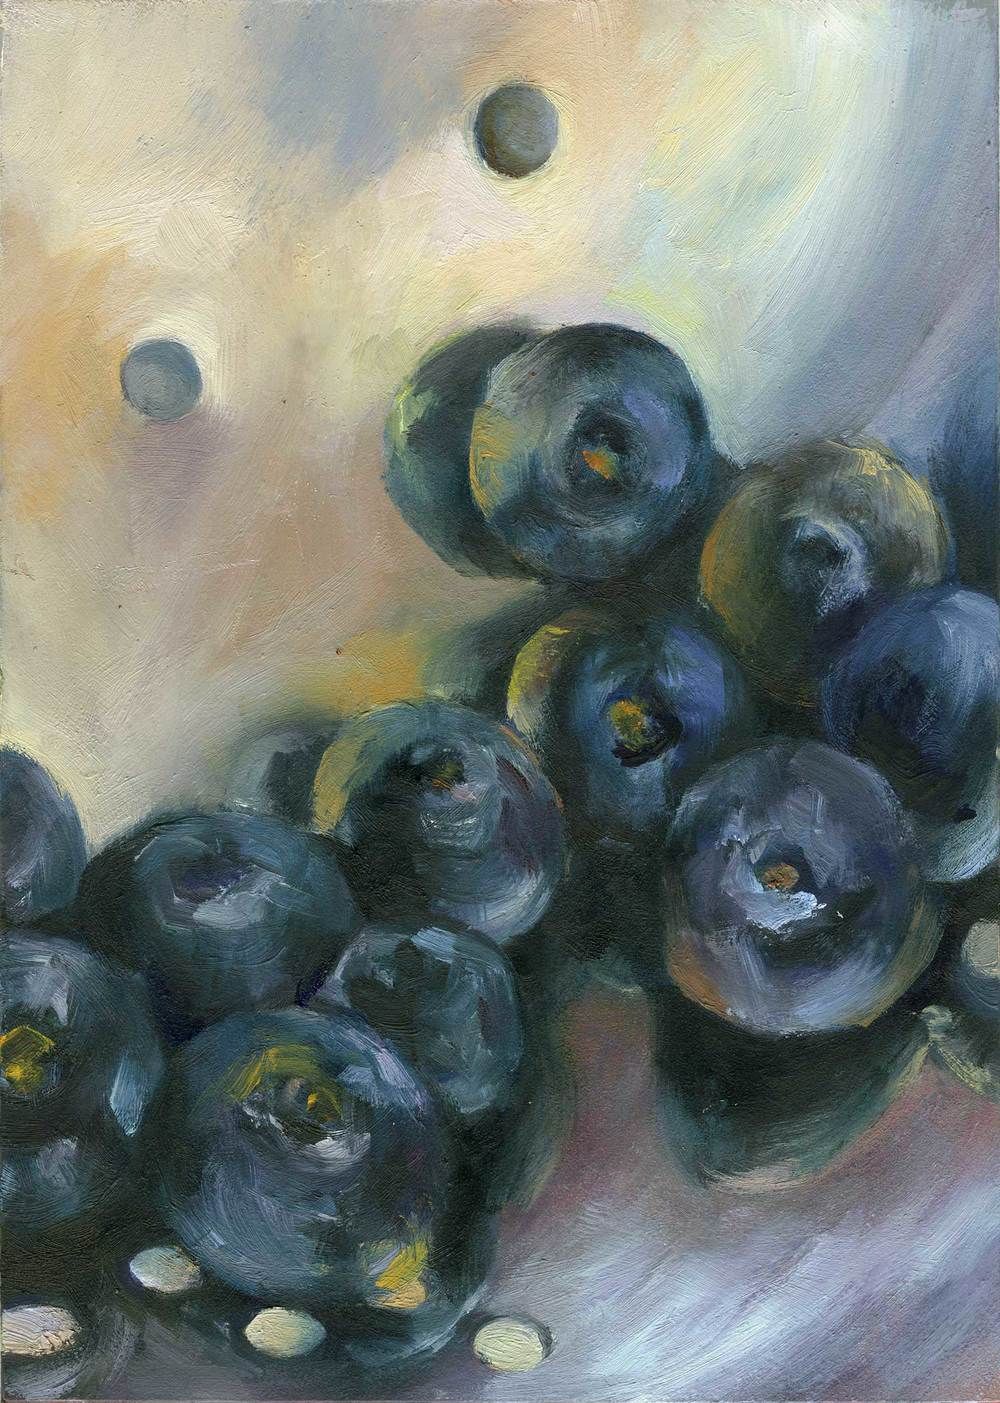 blueberry-wash-small-still-life-oil-painting.jpg